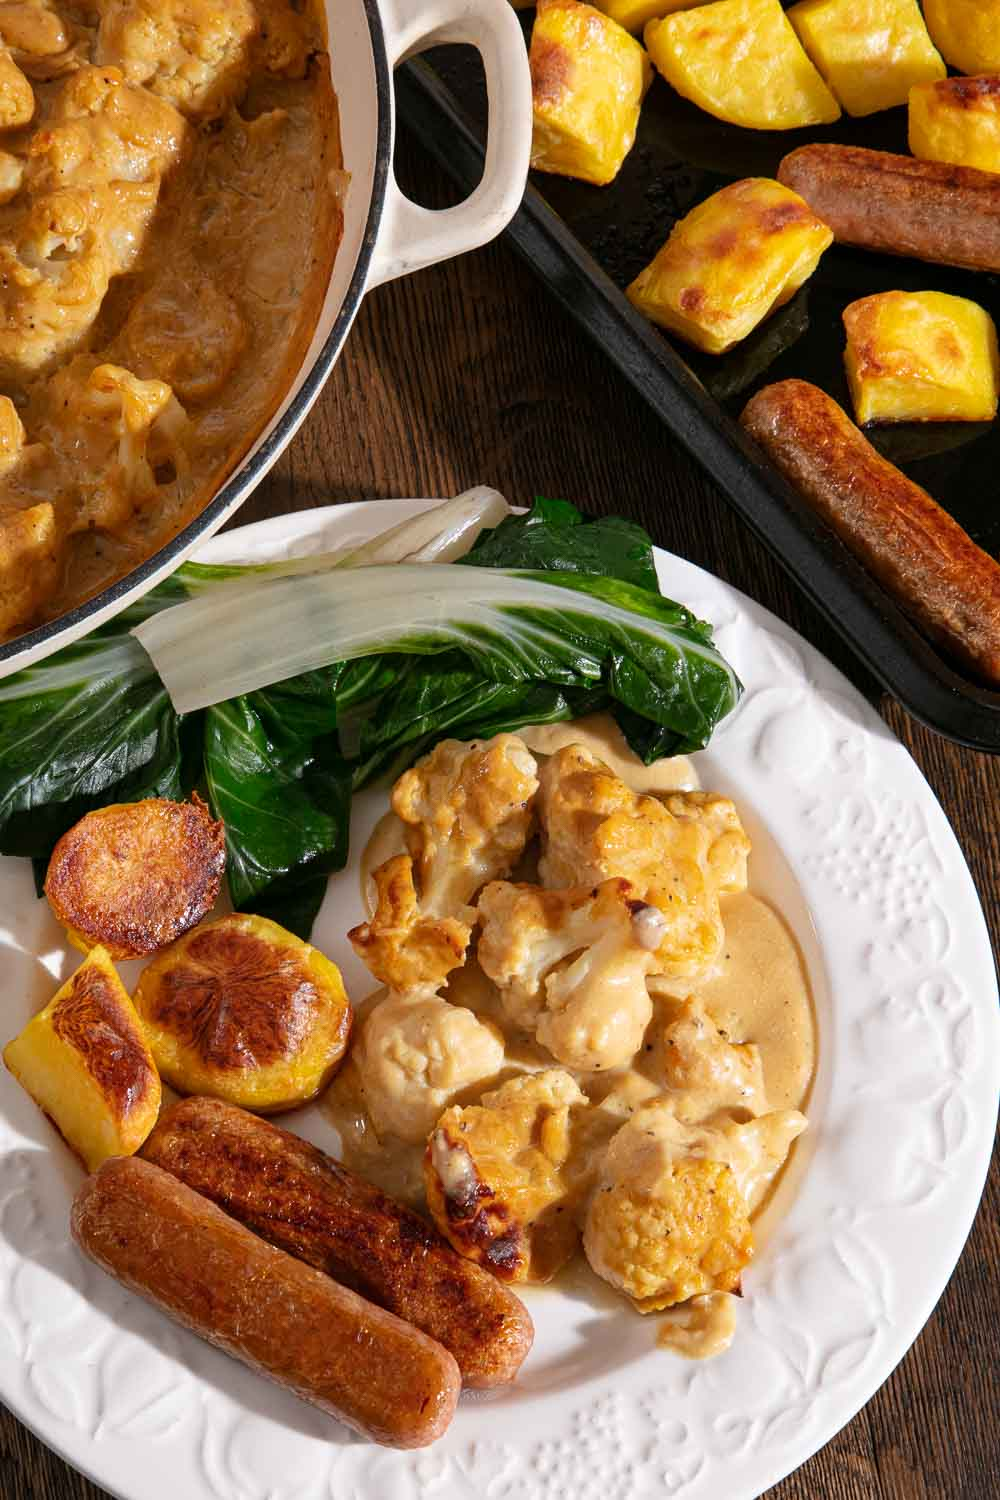 Vegan cauliflower cheese, roast potatoes, vegan sausages and chard on a plate with serving dishes in the background.